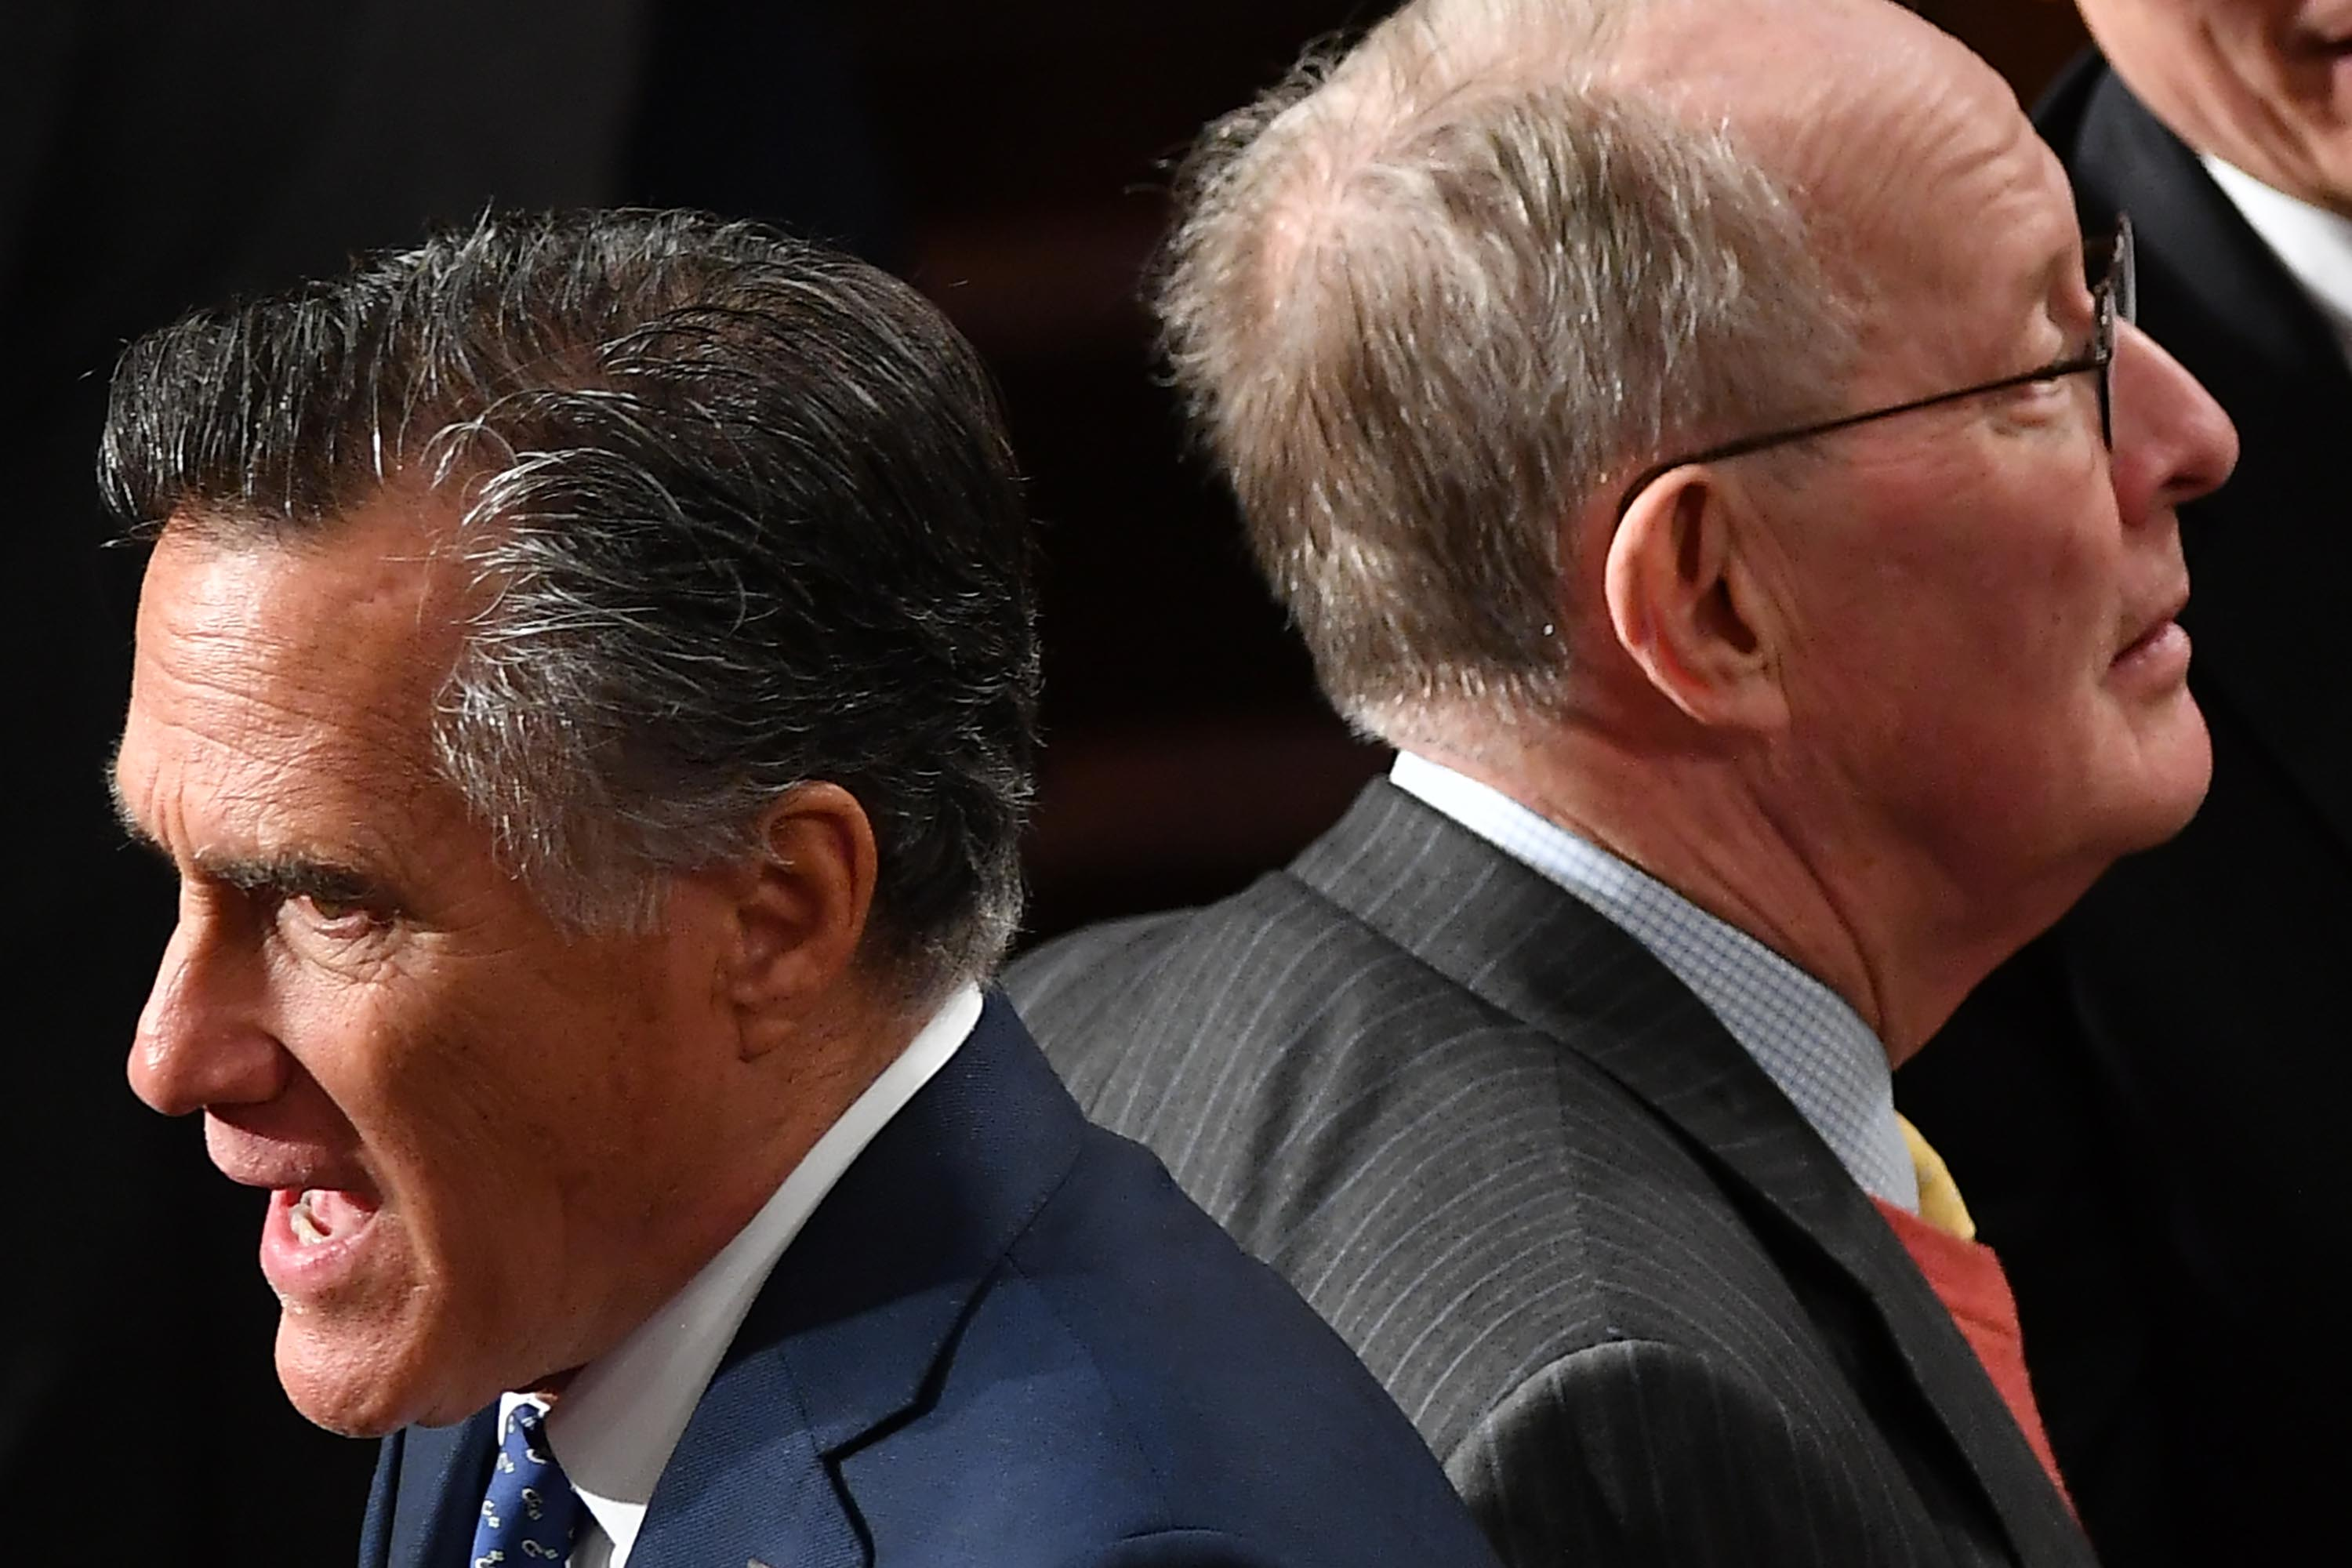 Sen. Mitt Romney and Sen. Lamar Alexander cross paths before the start of the State Of The Union address on Tuesday.